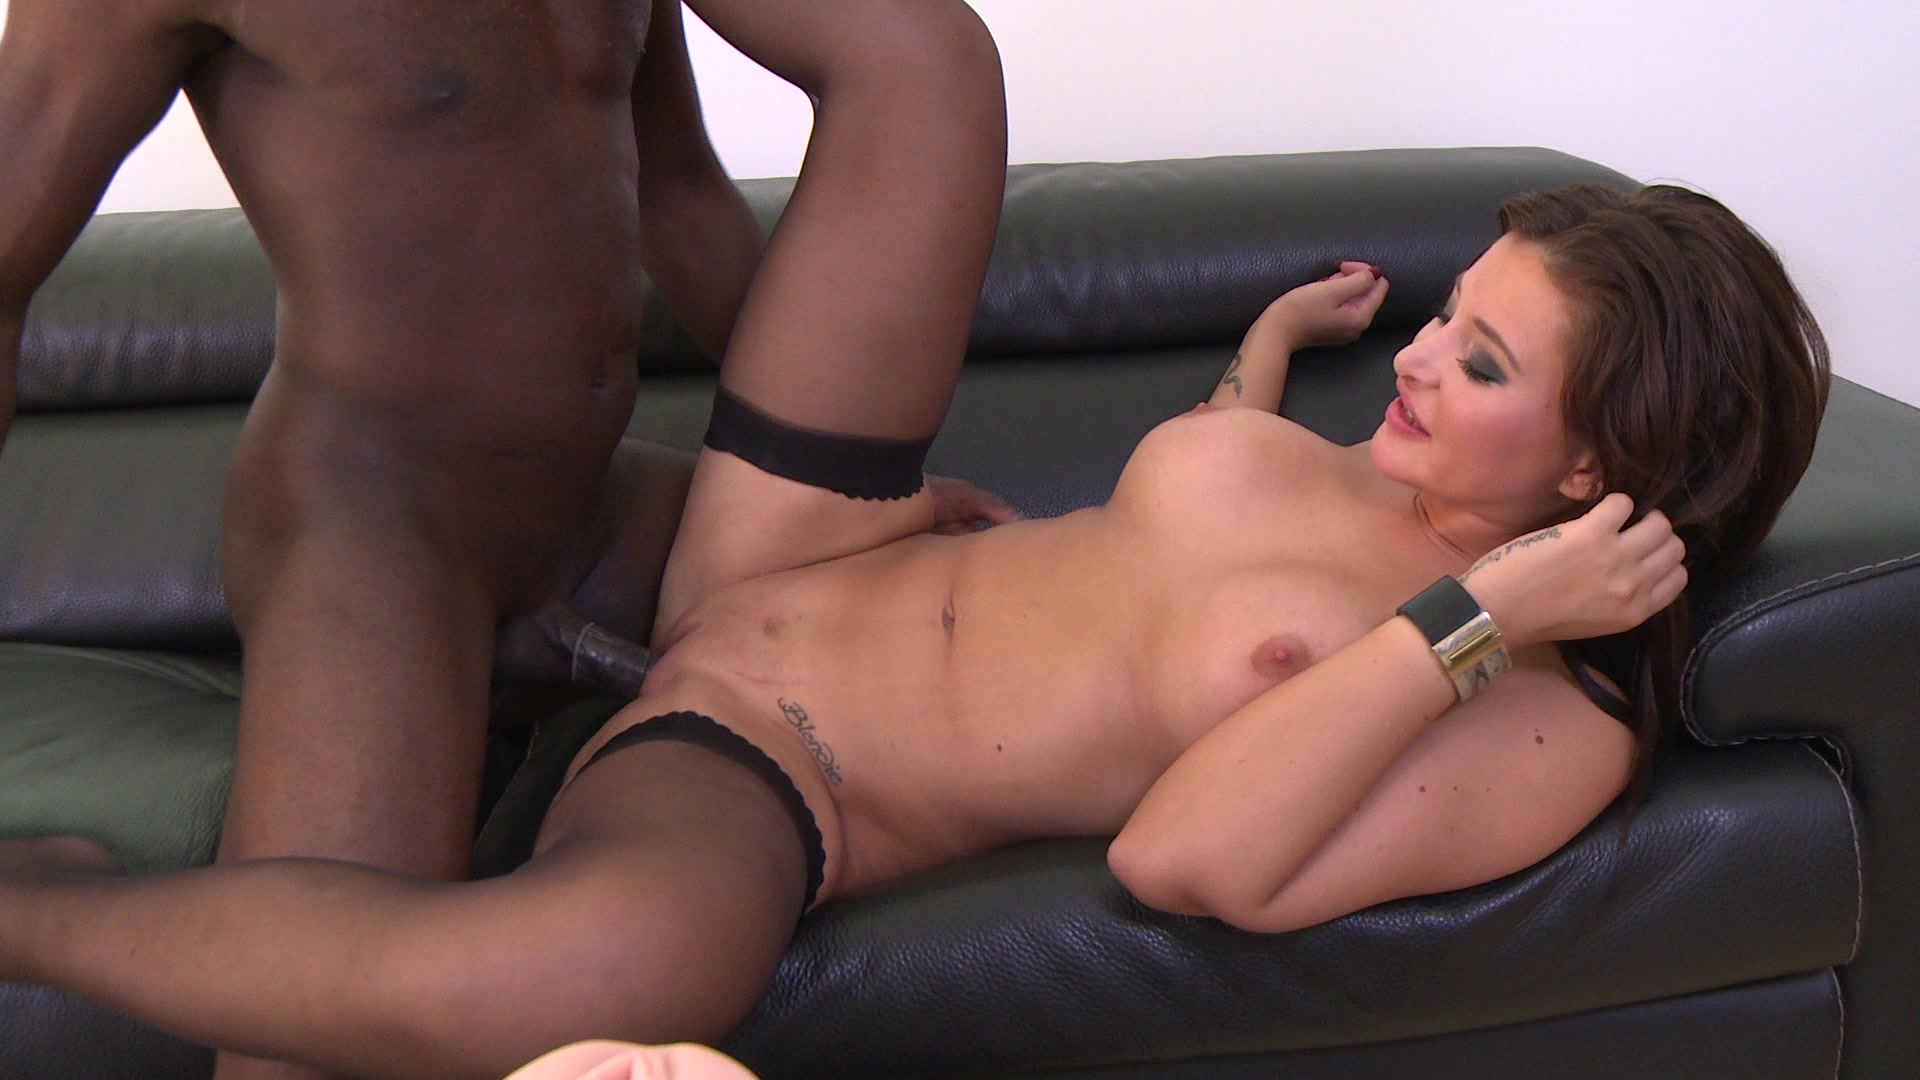 Stunning russian blonde anna polina rammed by big black cock after good cock suck